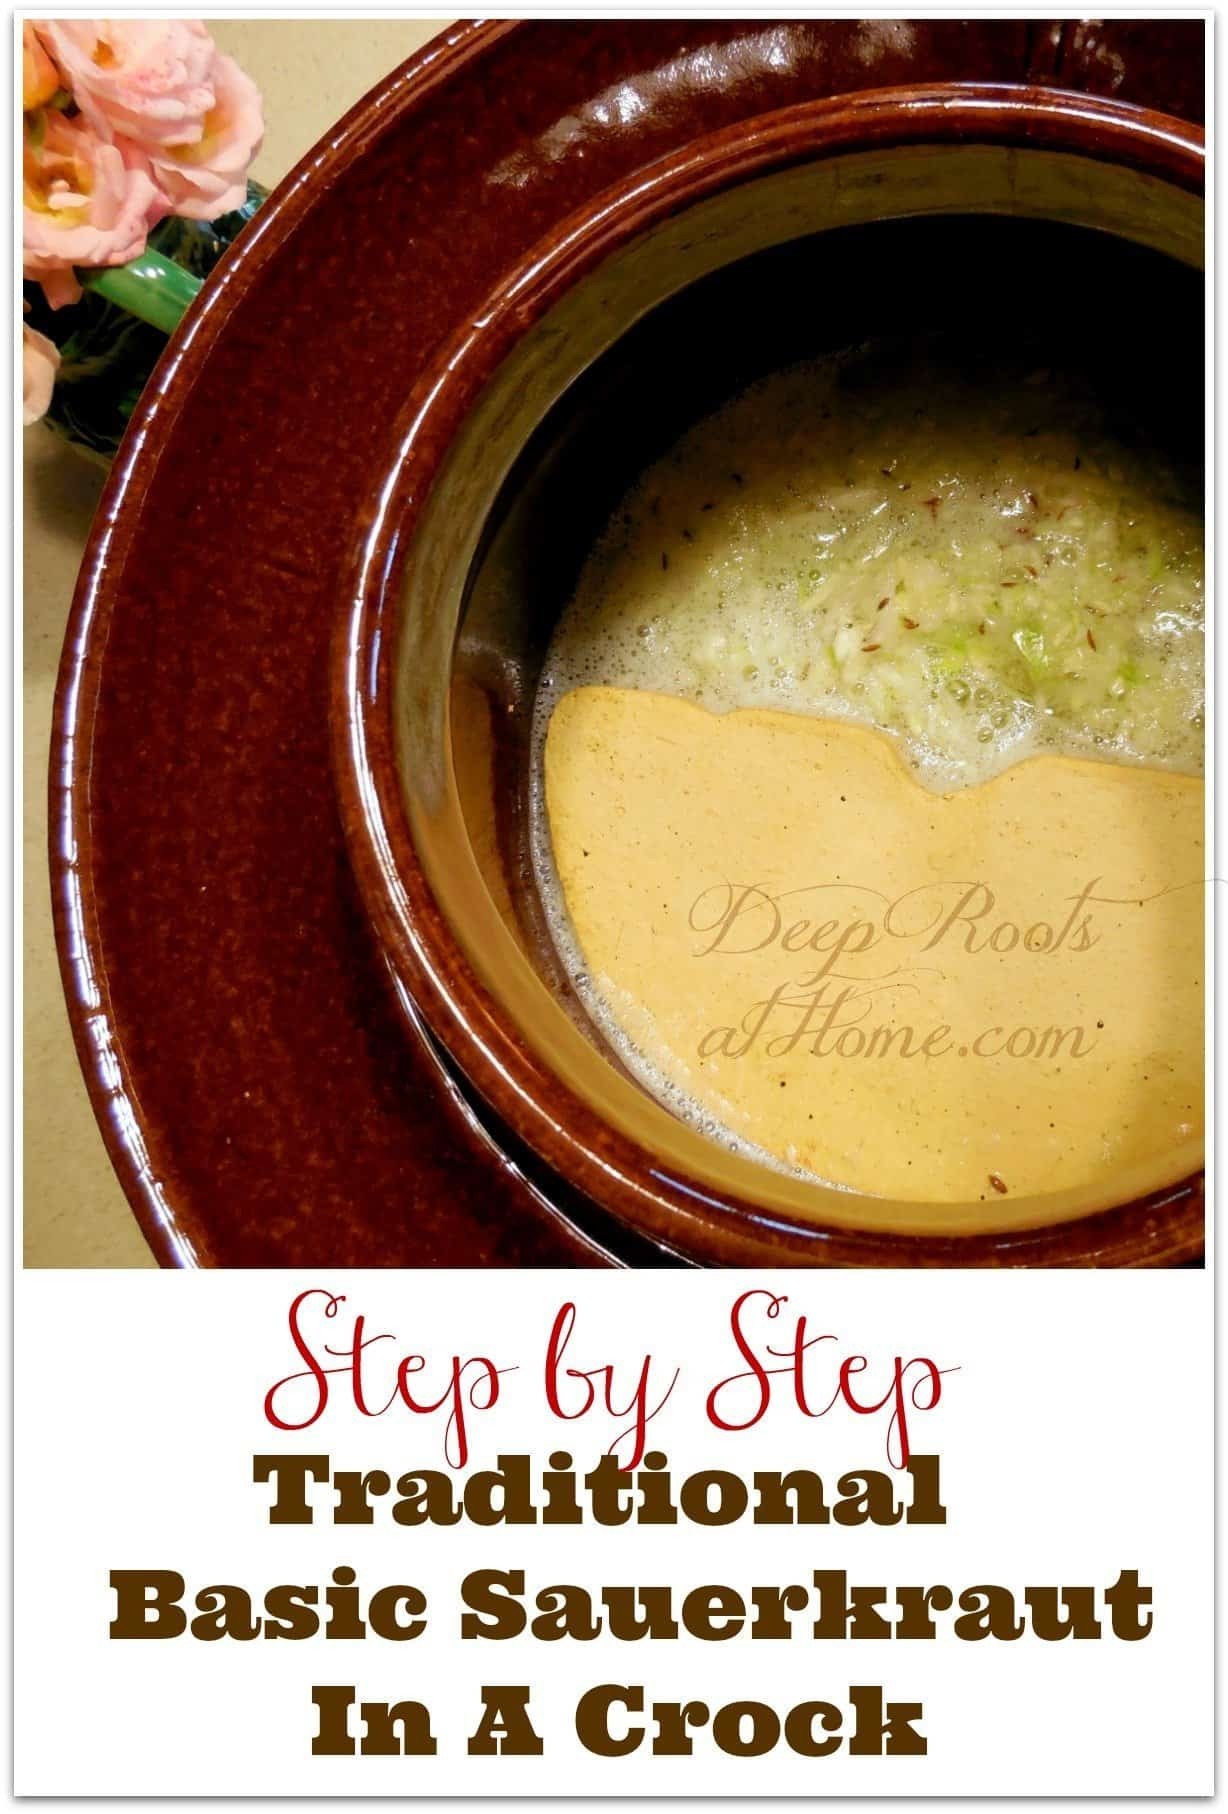 Step-by-Step Process Of Making Sauerkraut In a Crock,